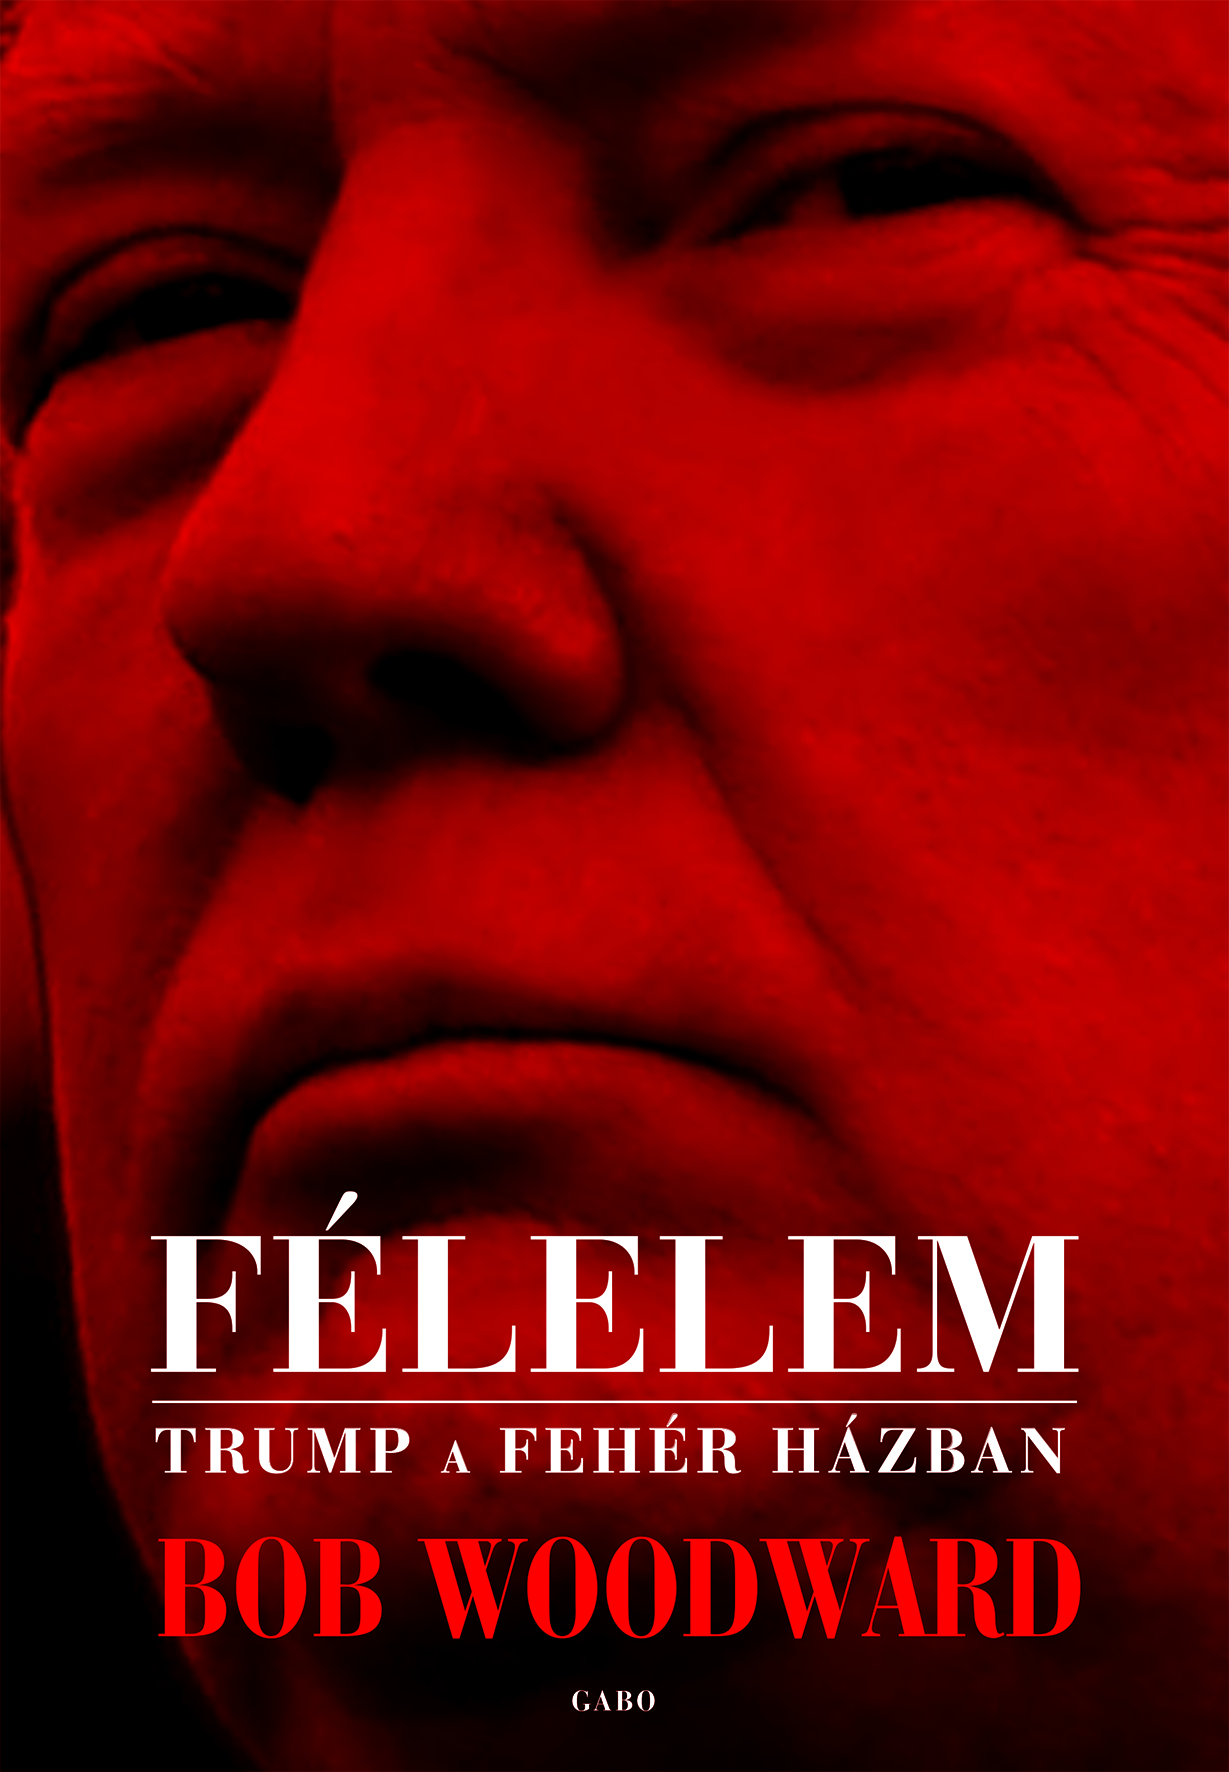 bw_trump_a_feher_hazban_media_1.jpg